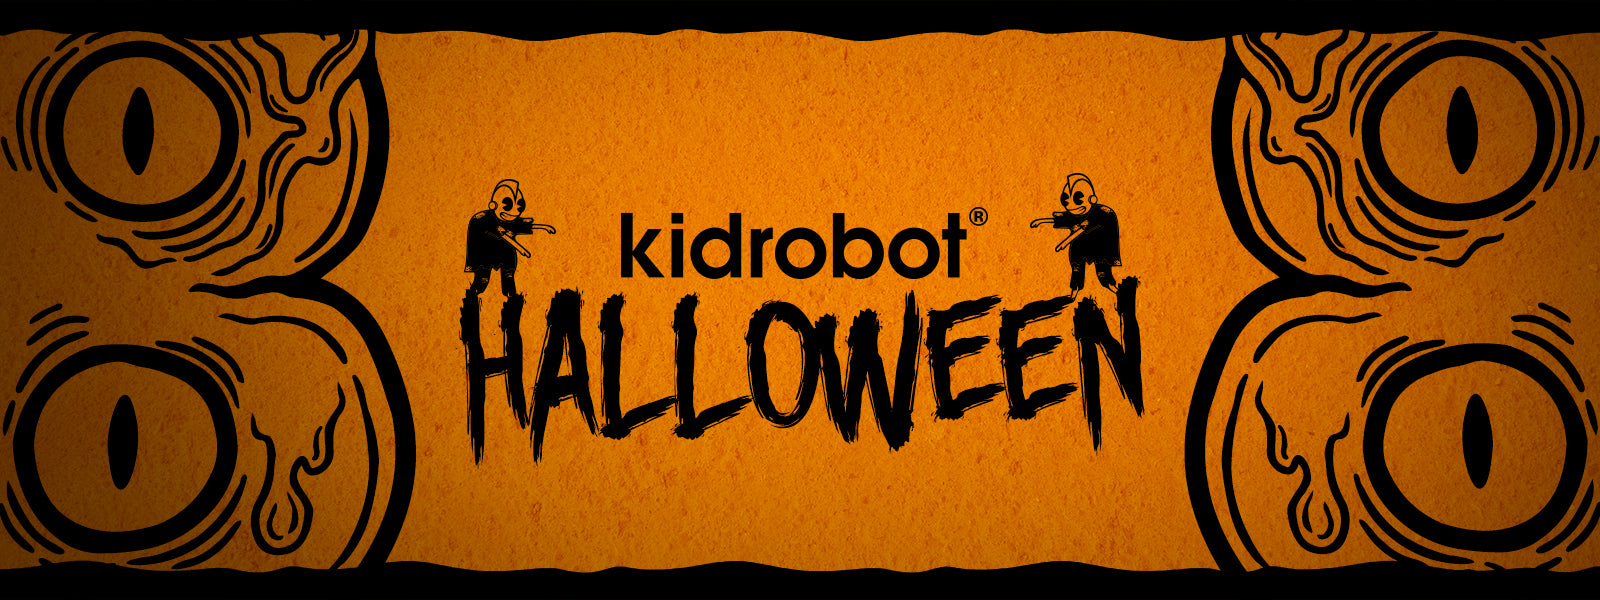 Halloween Toys & Collectibles from Kidrobot